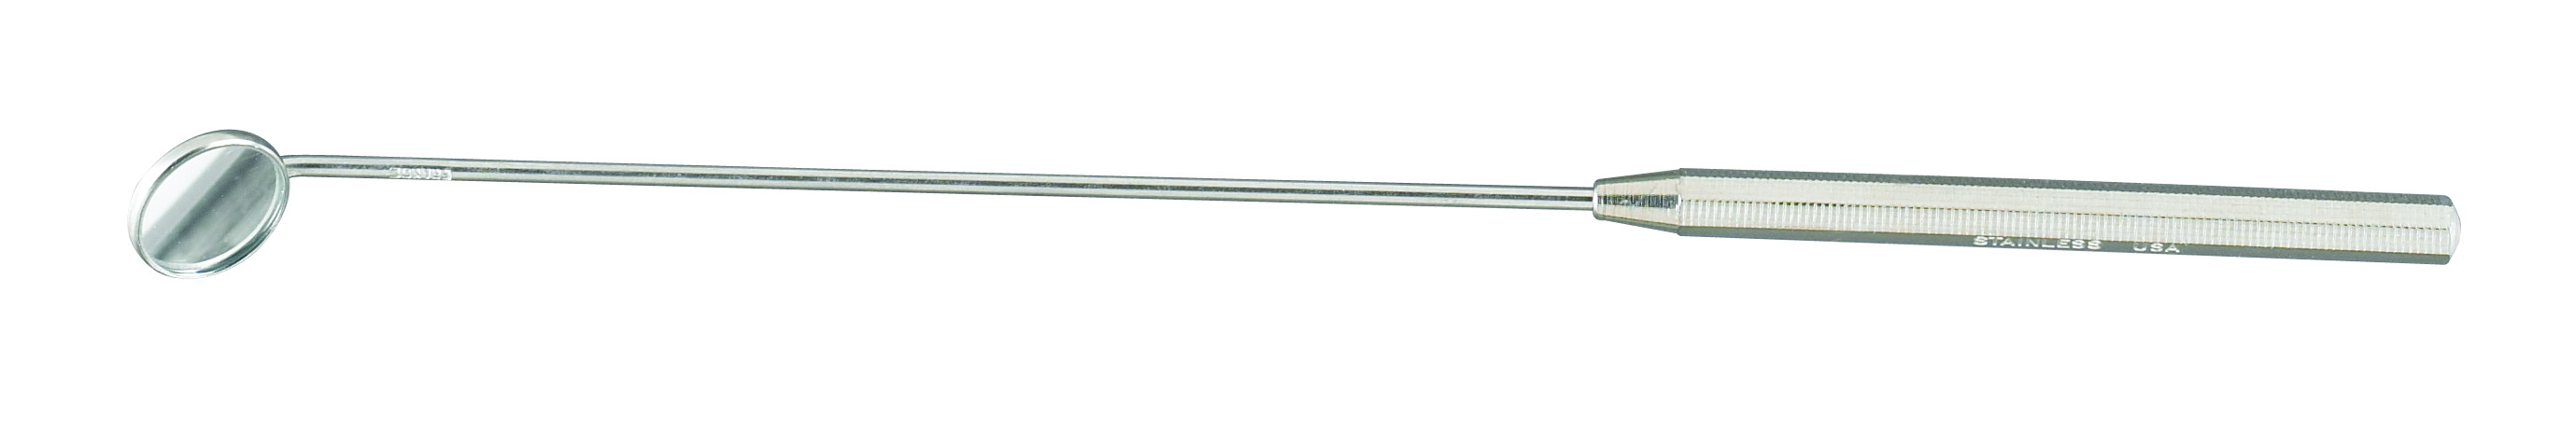 laryngeal-mirror-size-0-with-octagon-threaded-handle-14-mm-23-4-0-miltex.jpg